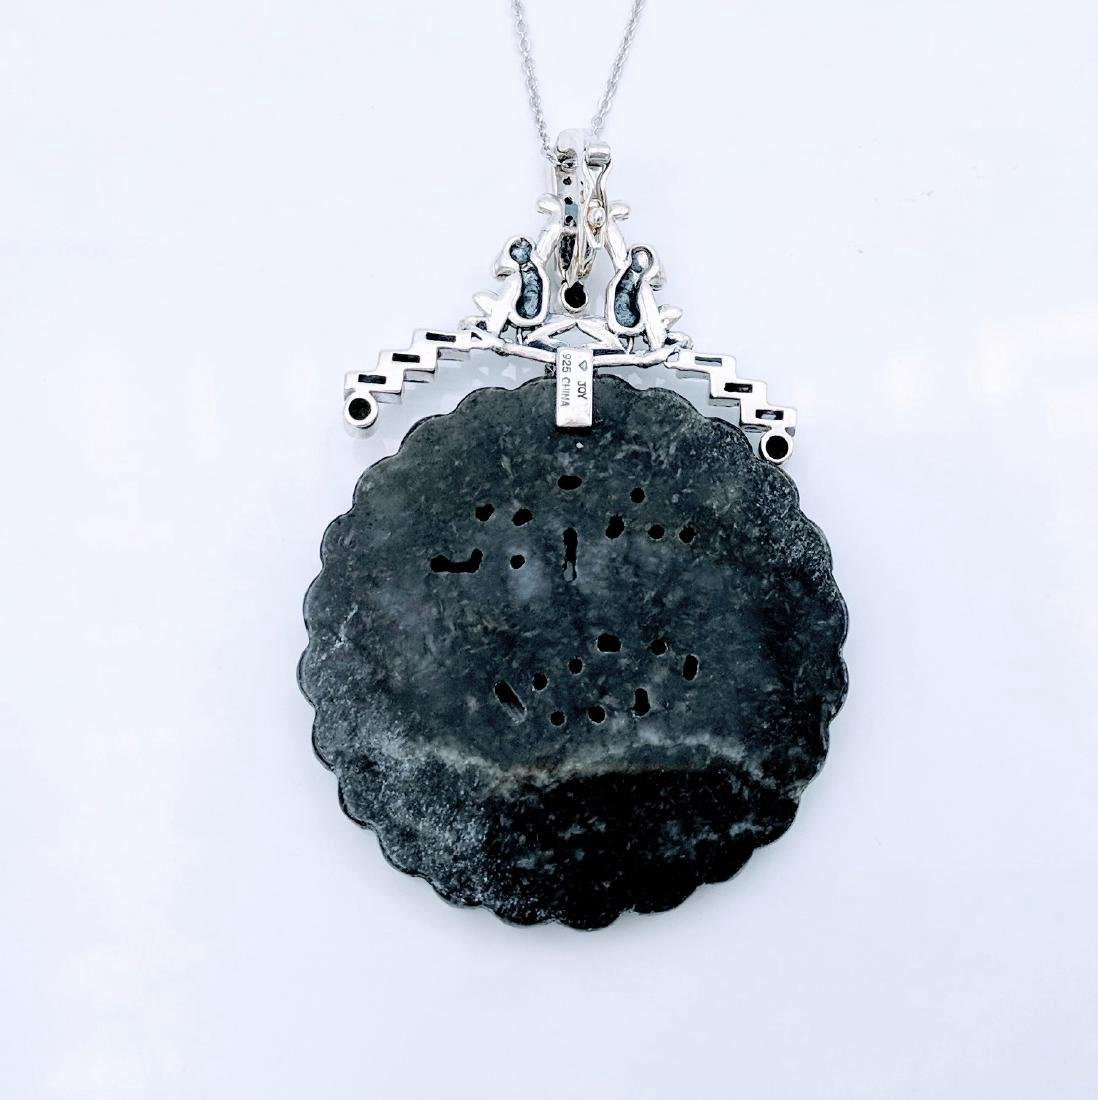 Sterling Silver Nuumite Onyx CZ Pendant Necklace - 3